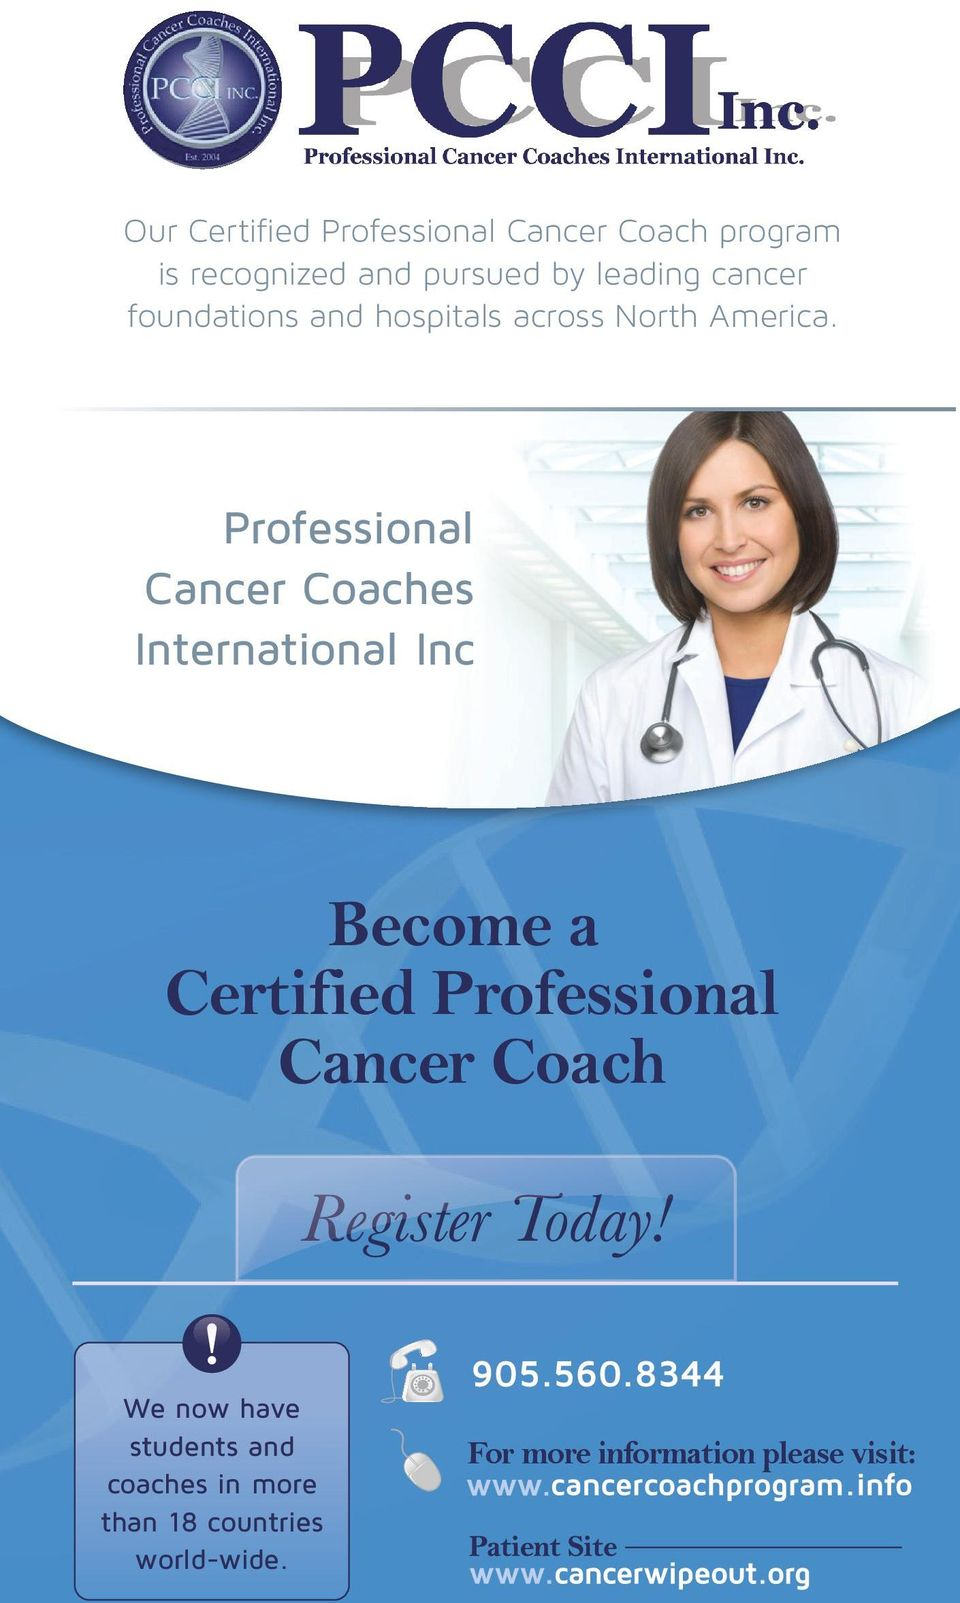 Professional Cancer Coaches International Inc Become a Certified Professional Cancer Coach